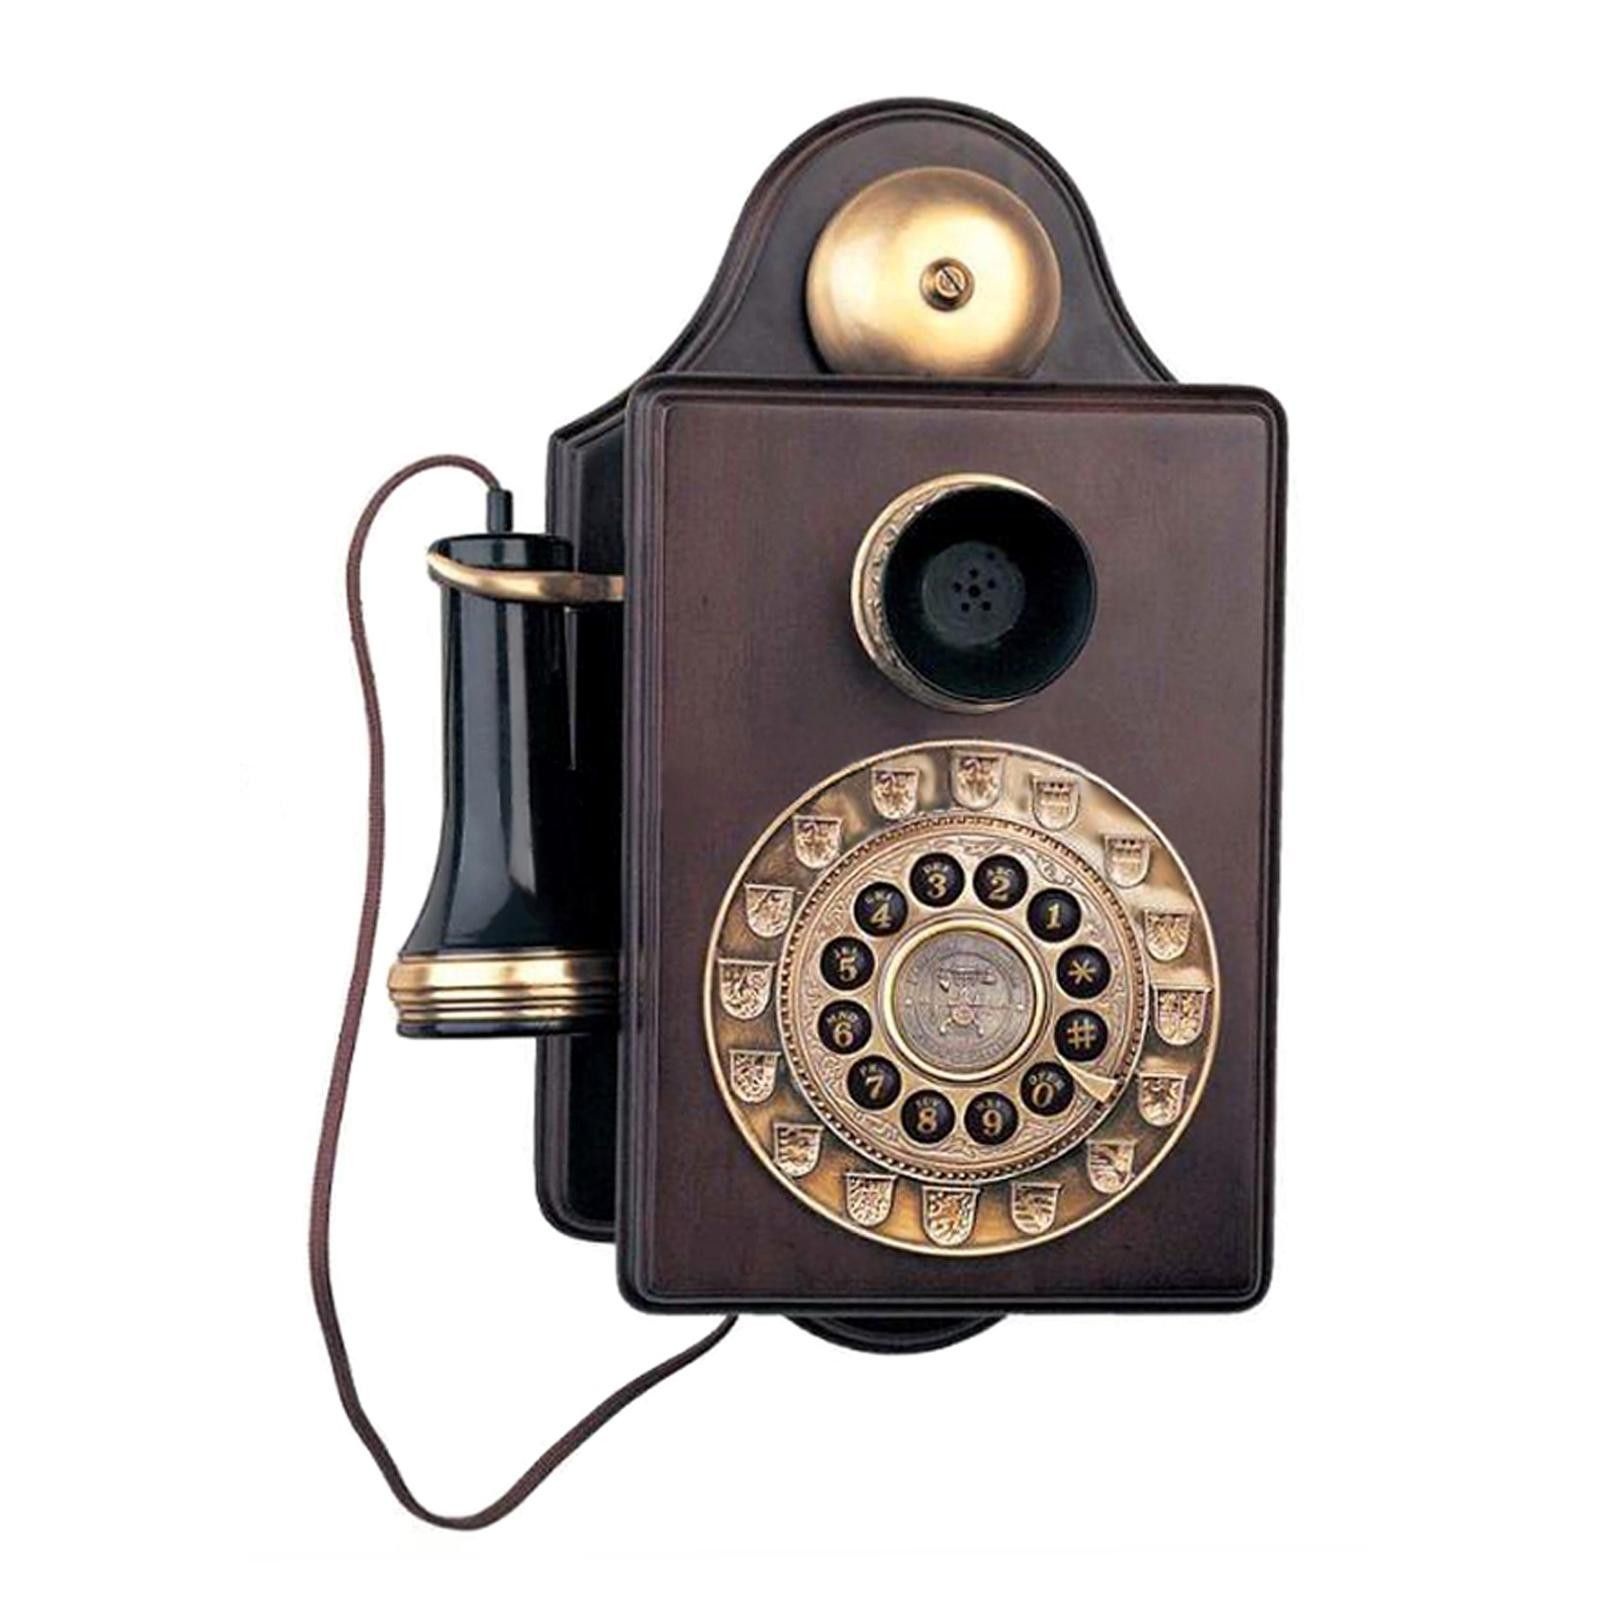 Paramount Antique Wall Reproduction Novelty Phone A great